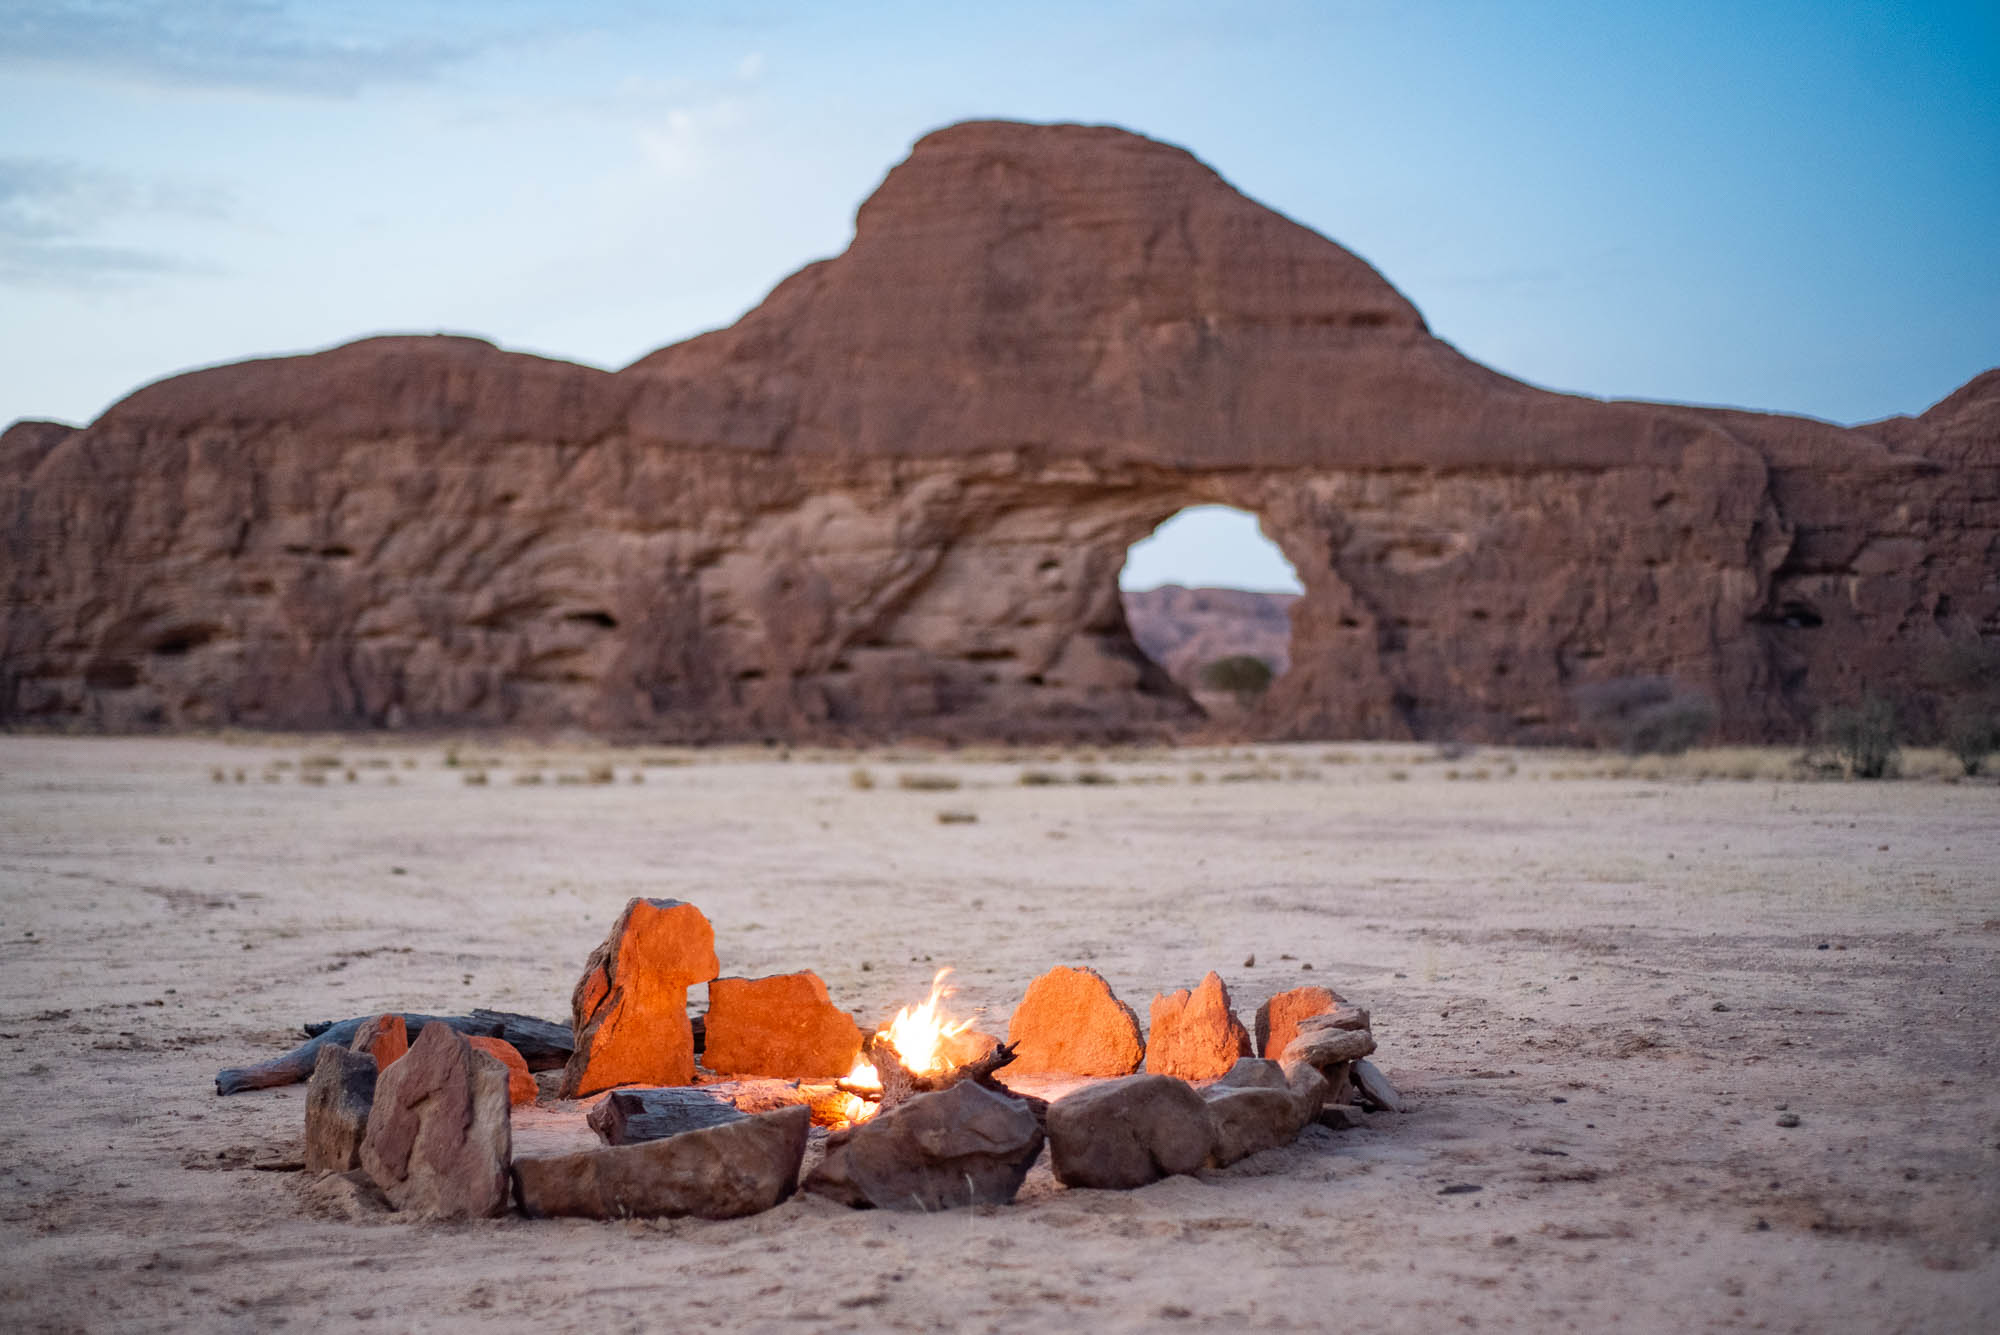 https://www.c4photosafaris.com/uploader/images/ENNEDI_(1).jpg